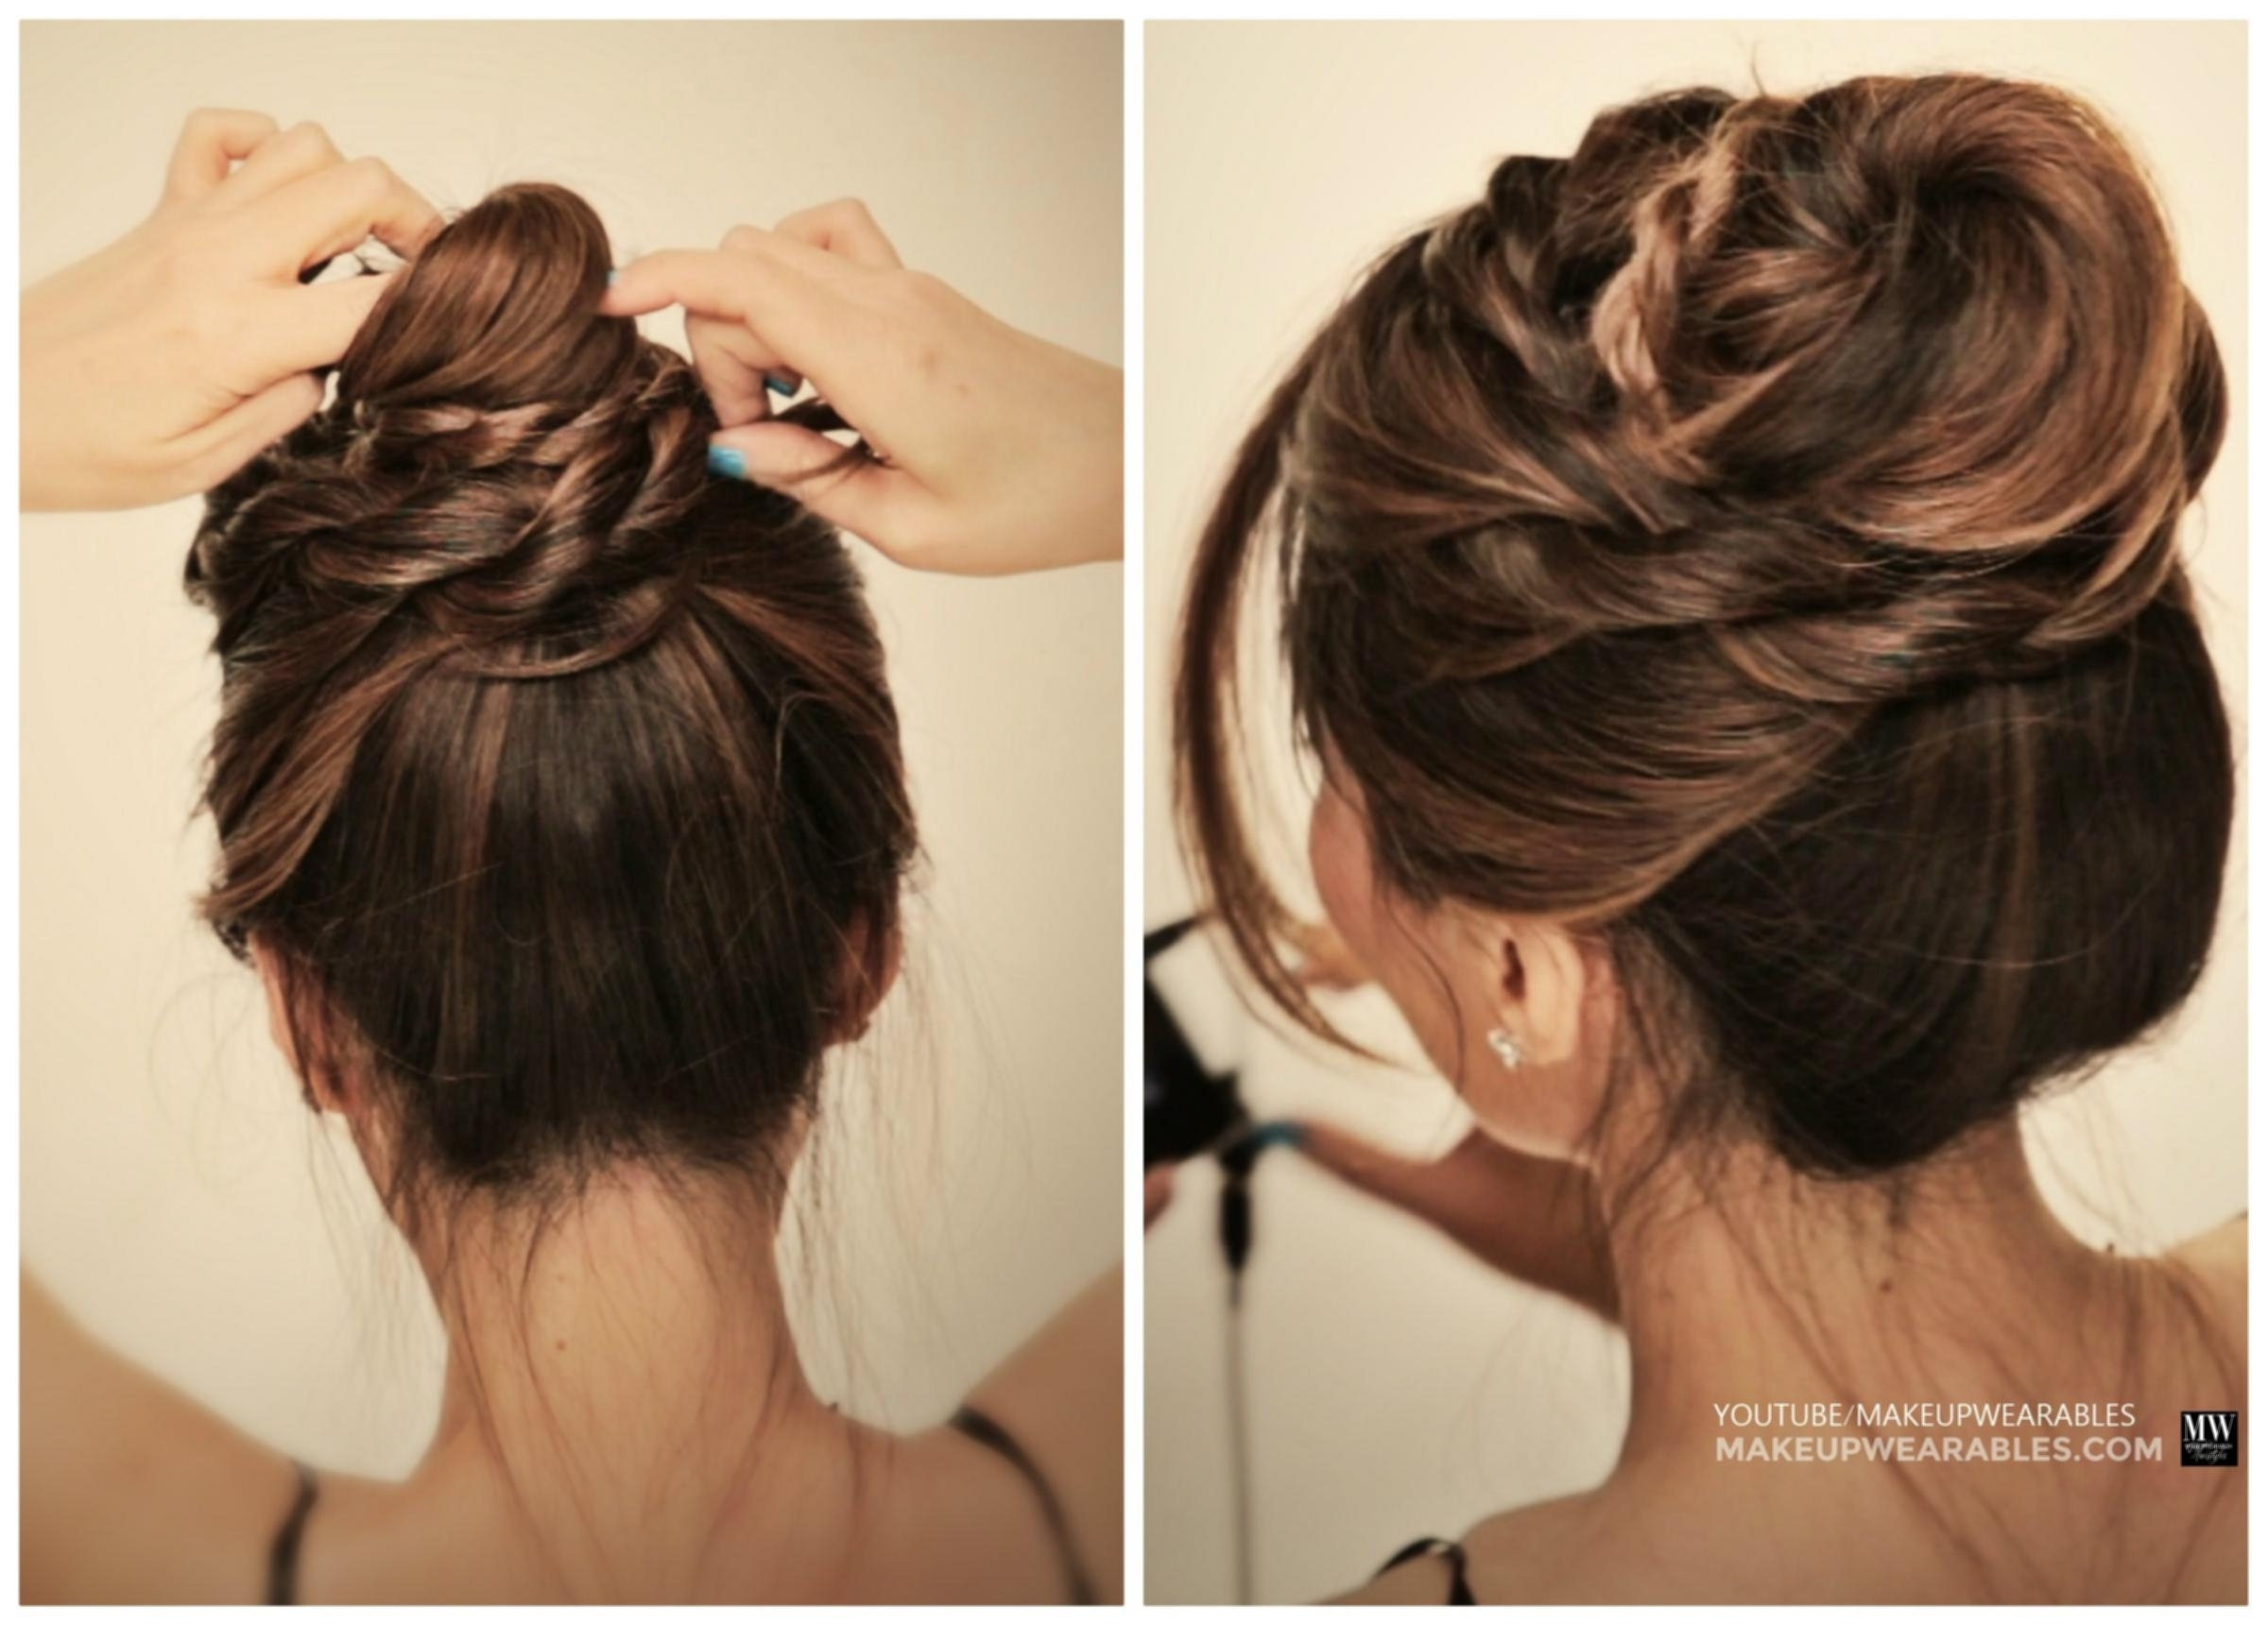 Quick Cute Messy Hairstyles Cute Messy Bun Braids Ballerina Twisted Intended For Quick Updo Hairstyles (Gallery 10 of 15)